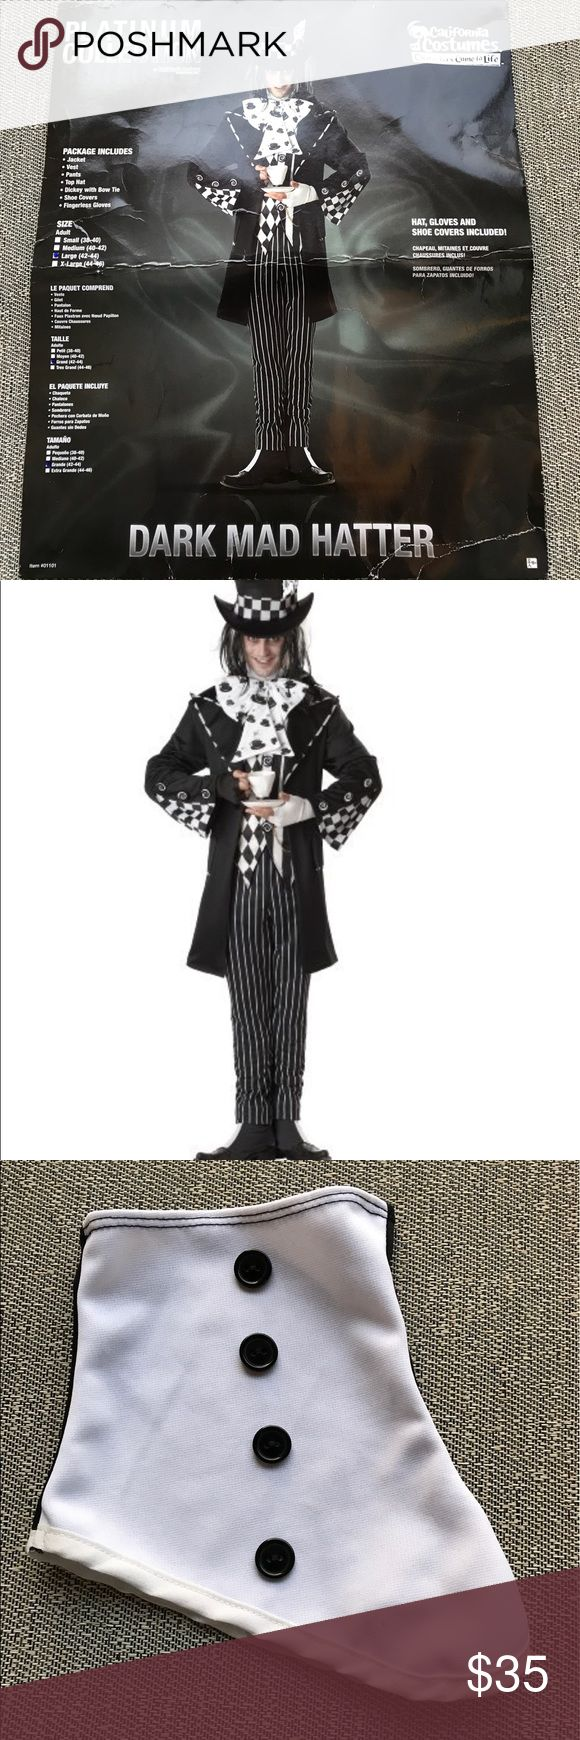 Men's Mad Hatter Costume Ready for Halloween yet?? Package includes jacket, vest, pants top hat, dickey with bow tie, shoe cover, and glove... it is missing one shoe cover and one glove the shoe cover is the 3rd picture and then there's the glove. Worn only once and mostly was for pictures. Other